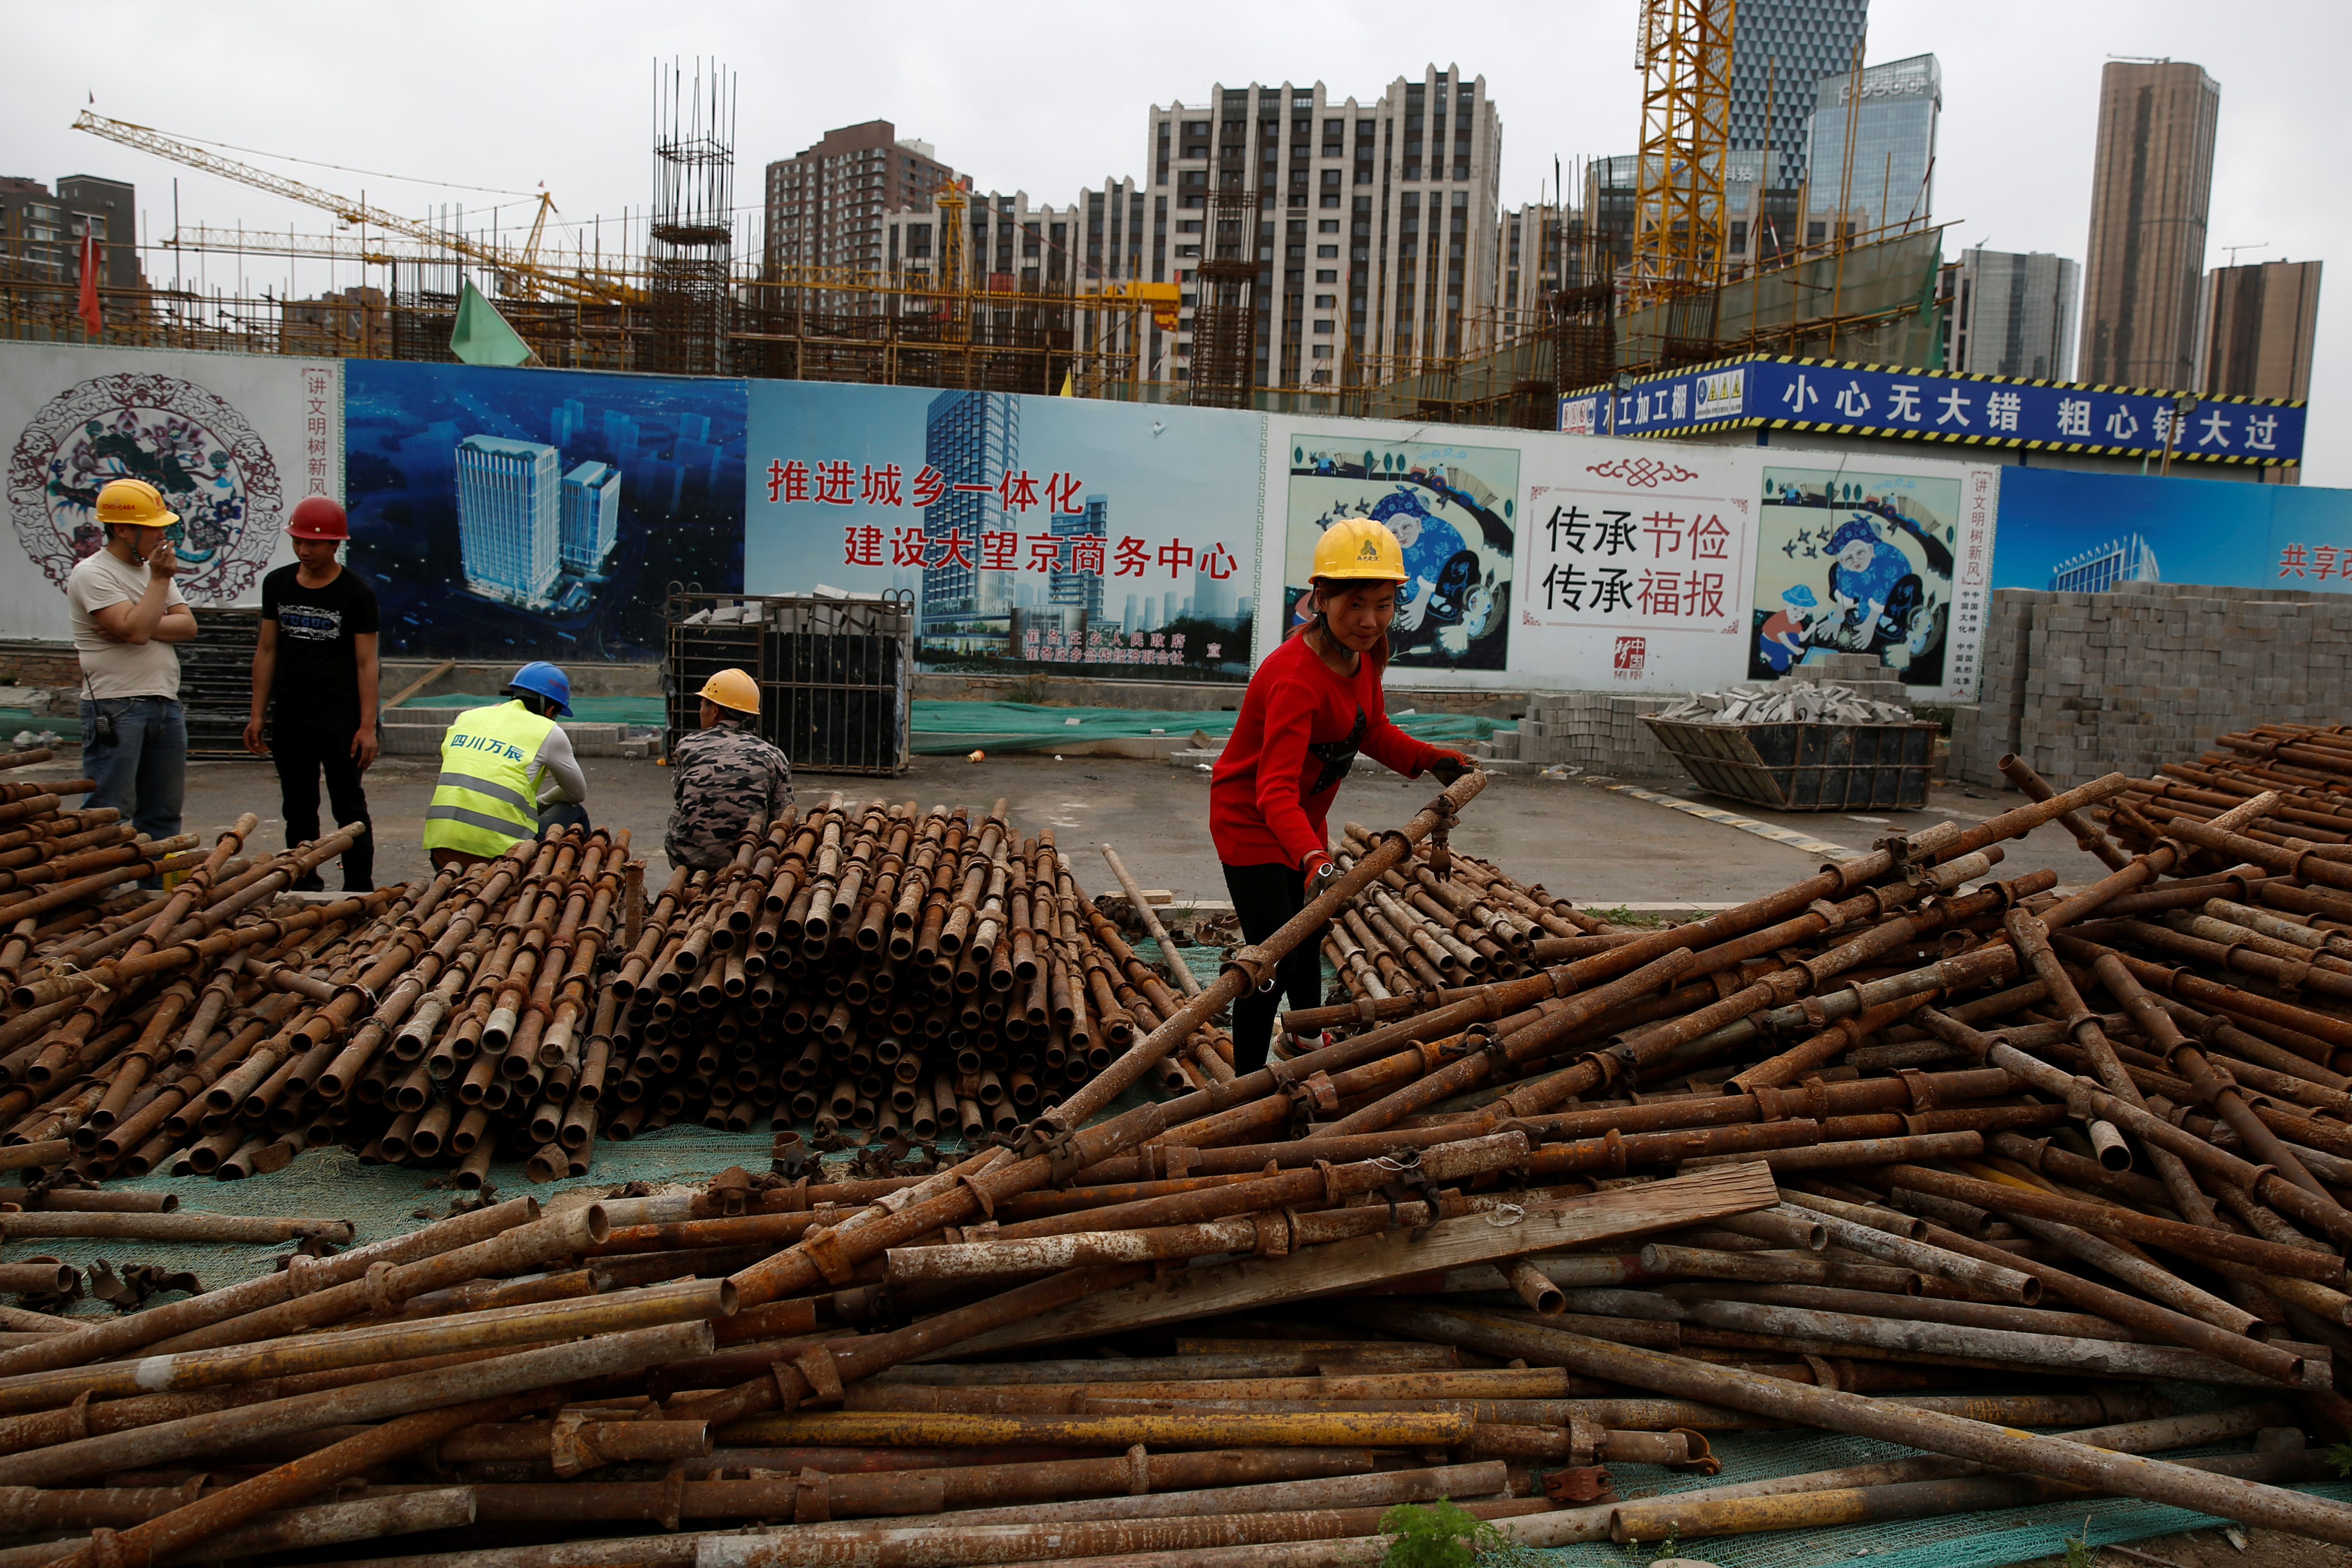 A woman sorts scaffolding poles at a construction site near recently erected office and residential high-rises in Beijing, China April 20, 2017. REUTERS/Thomas Peter - RTS1342V